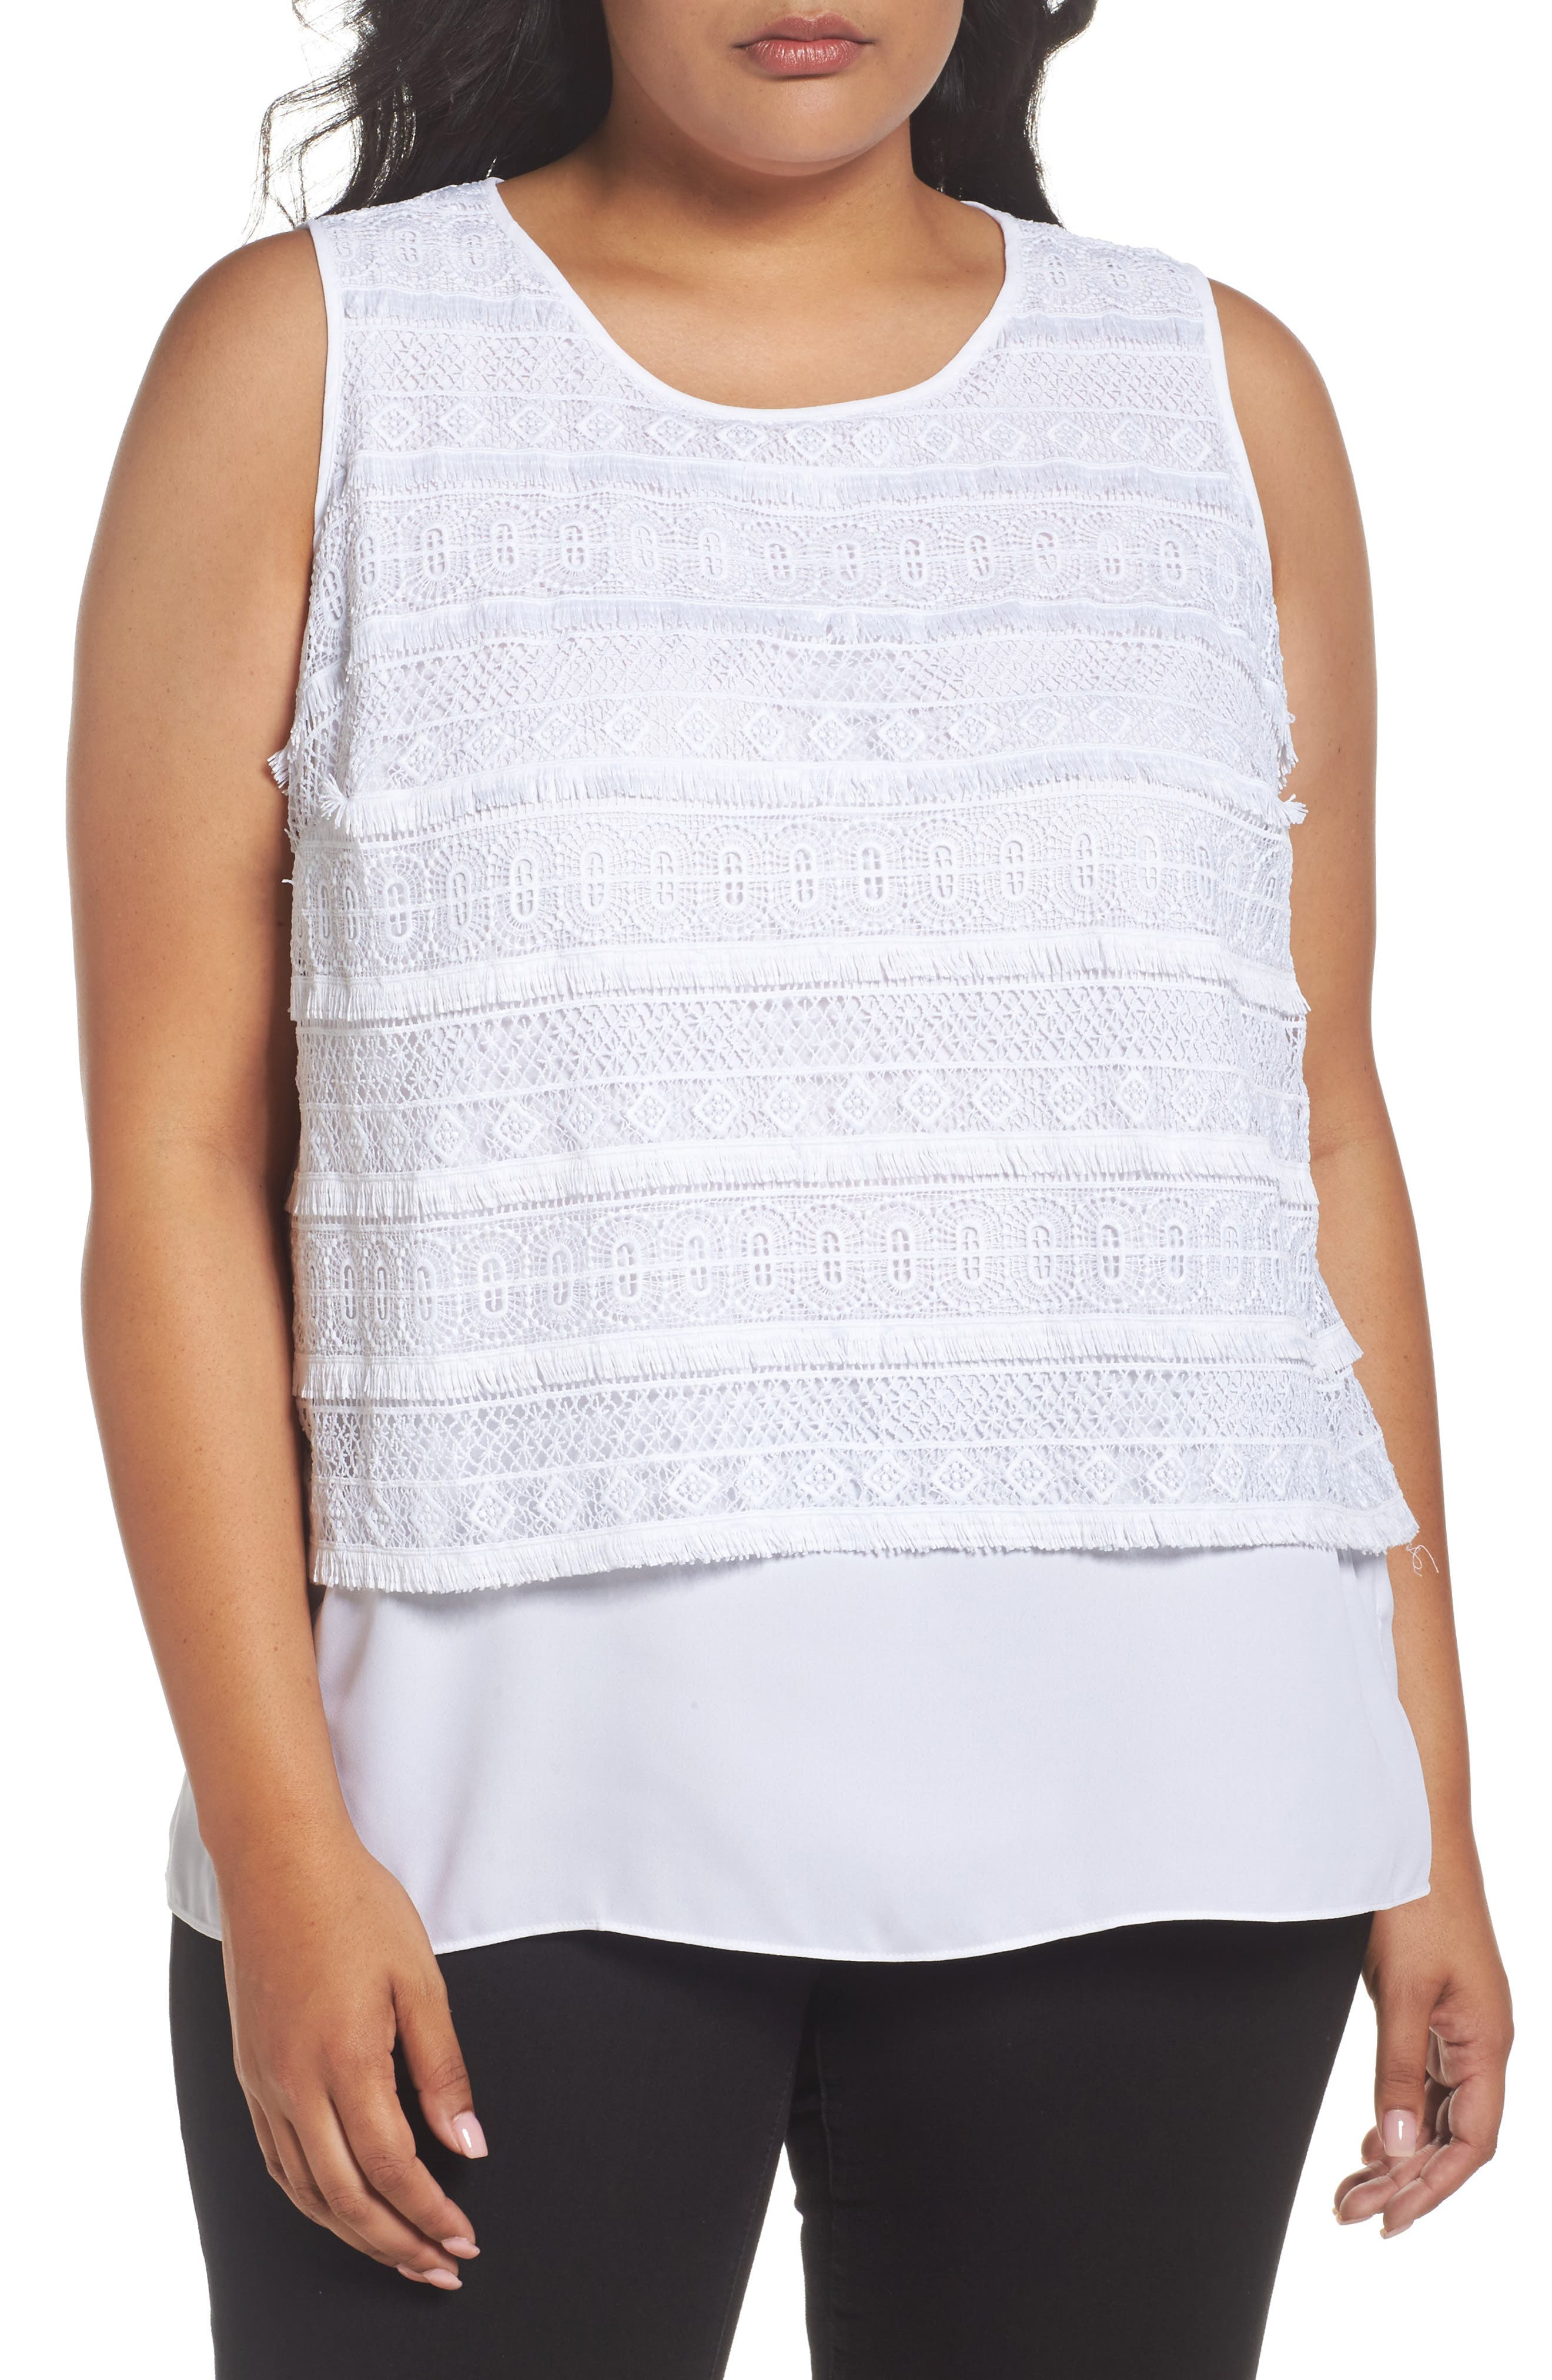 Vince Camuto Tiered Lace Top (Plus Size)